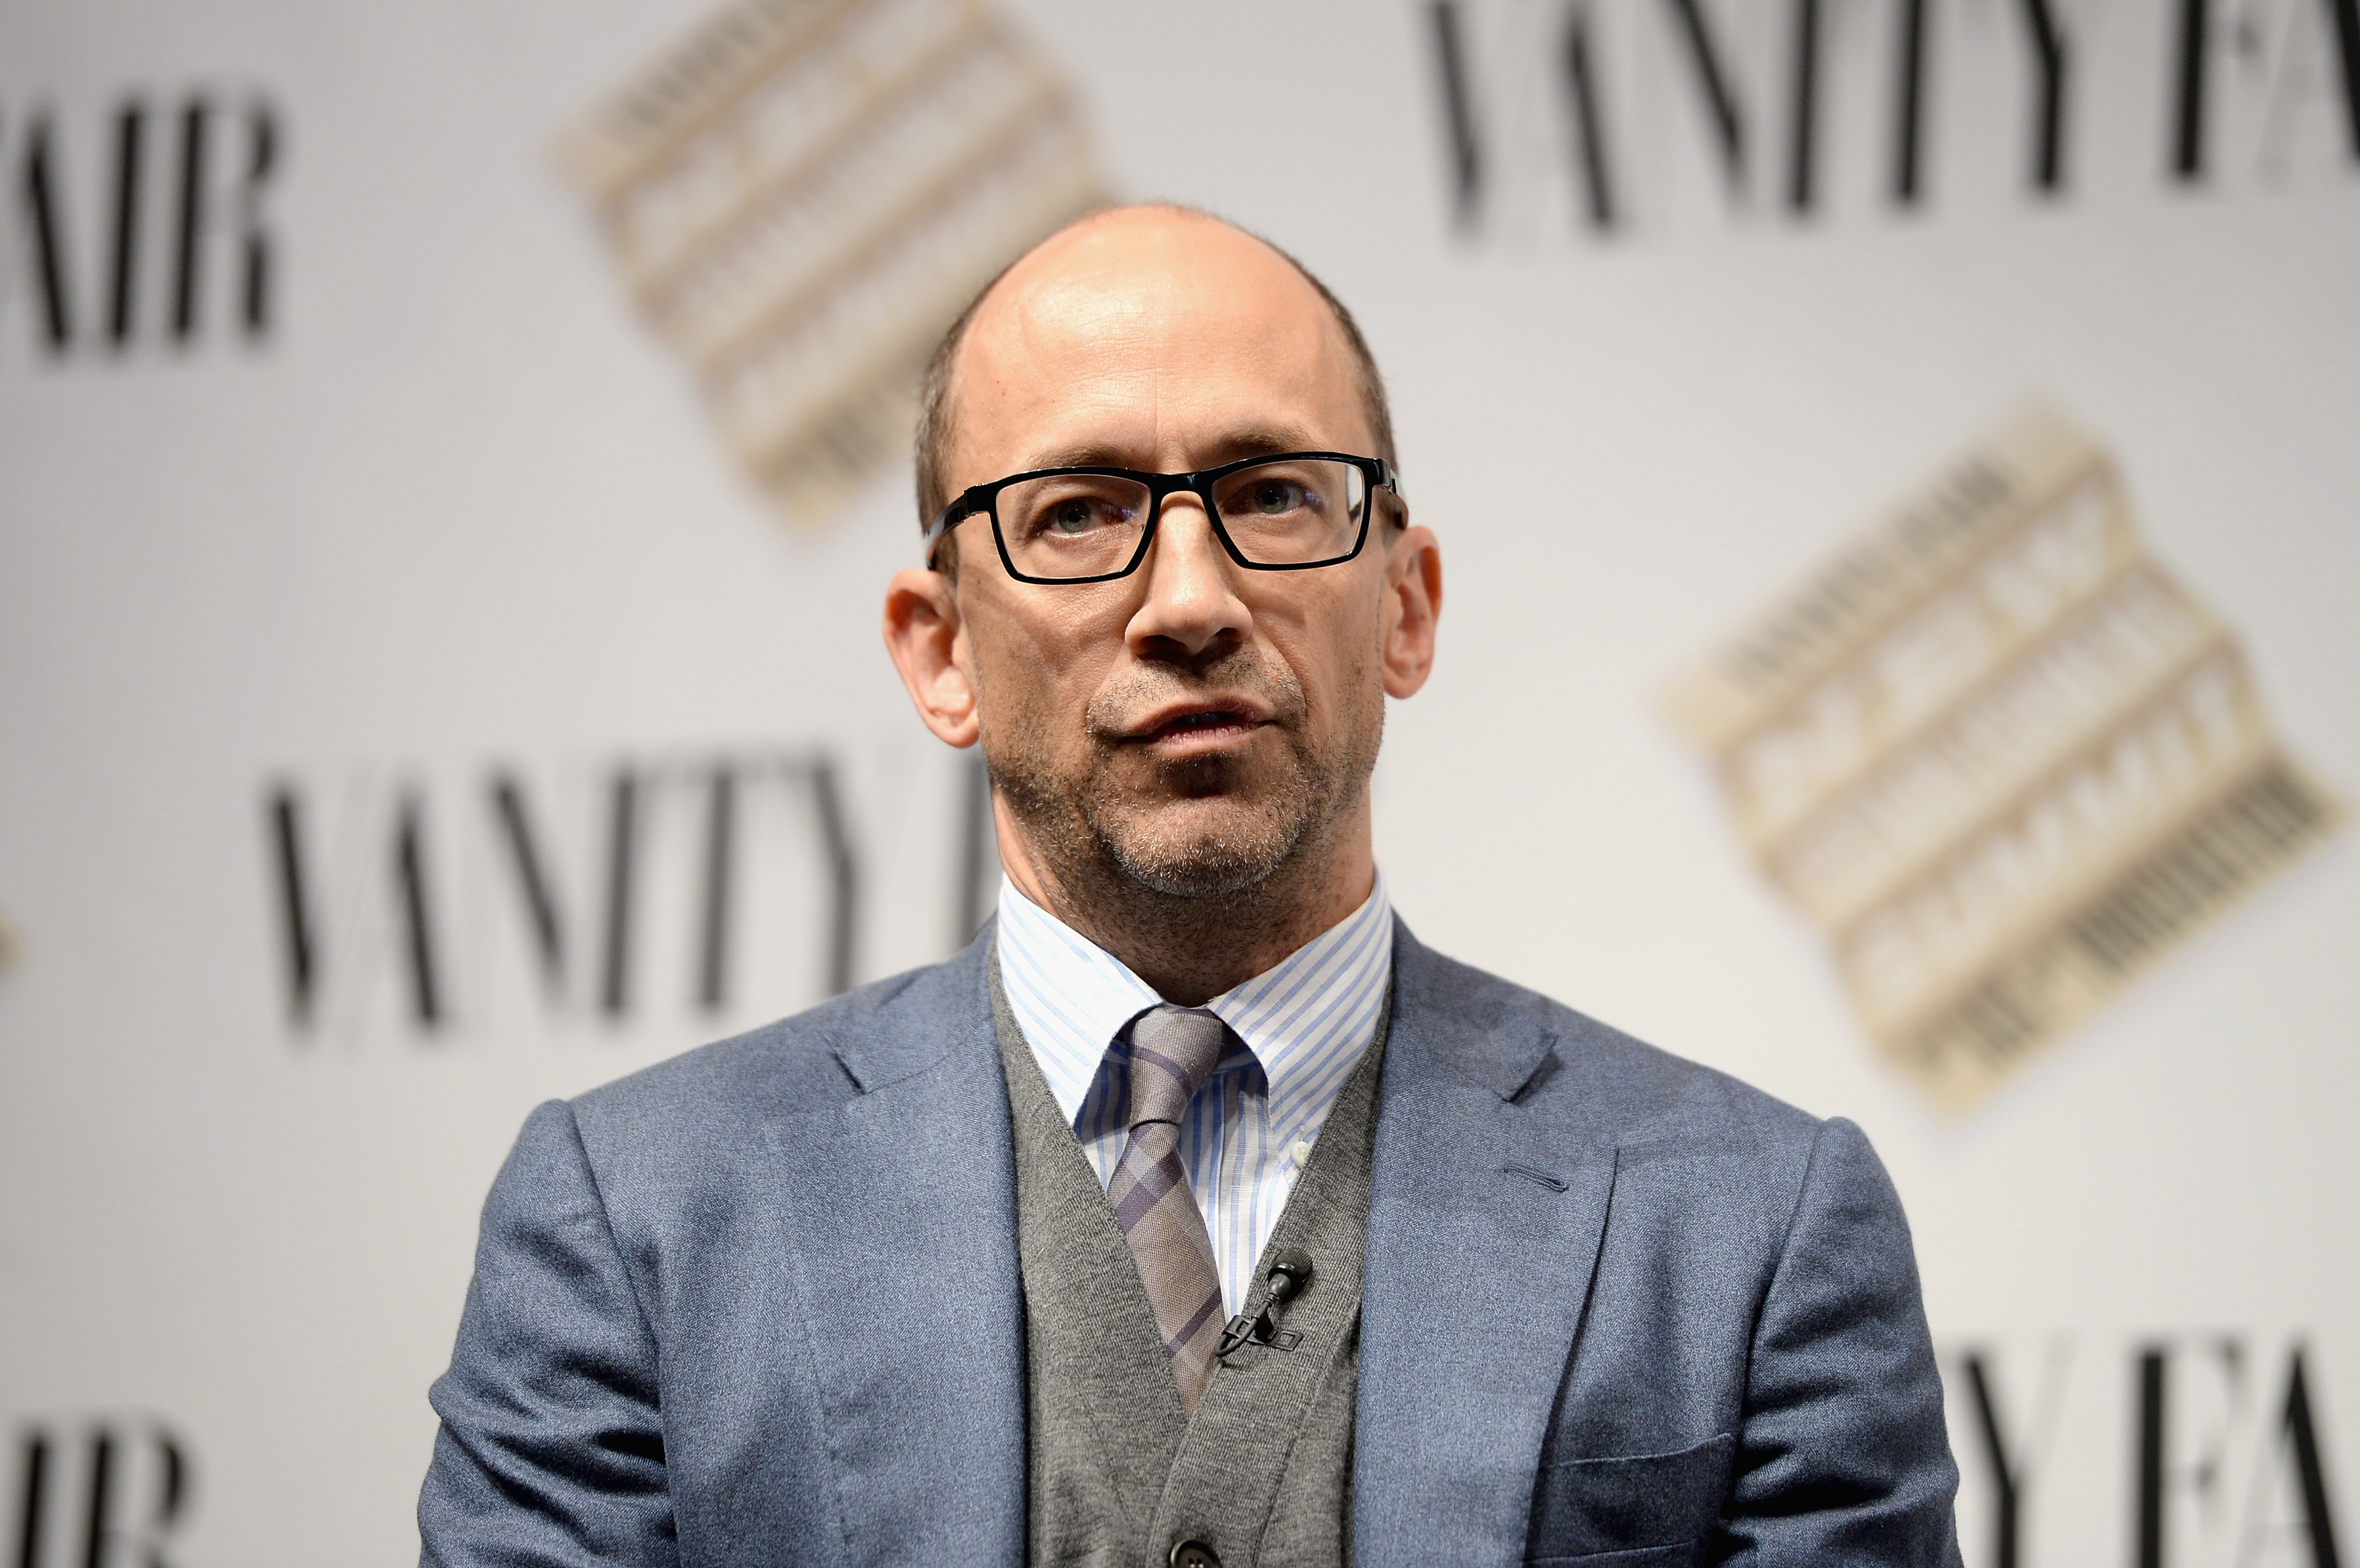 Dick Costolo speaks onstage during 'Social Goes Global' at the Vanity Fair New Establishment Summit at Yerba Buena Center for the Arts on October 9, 2014 in San Francisco.